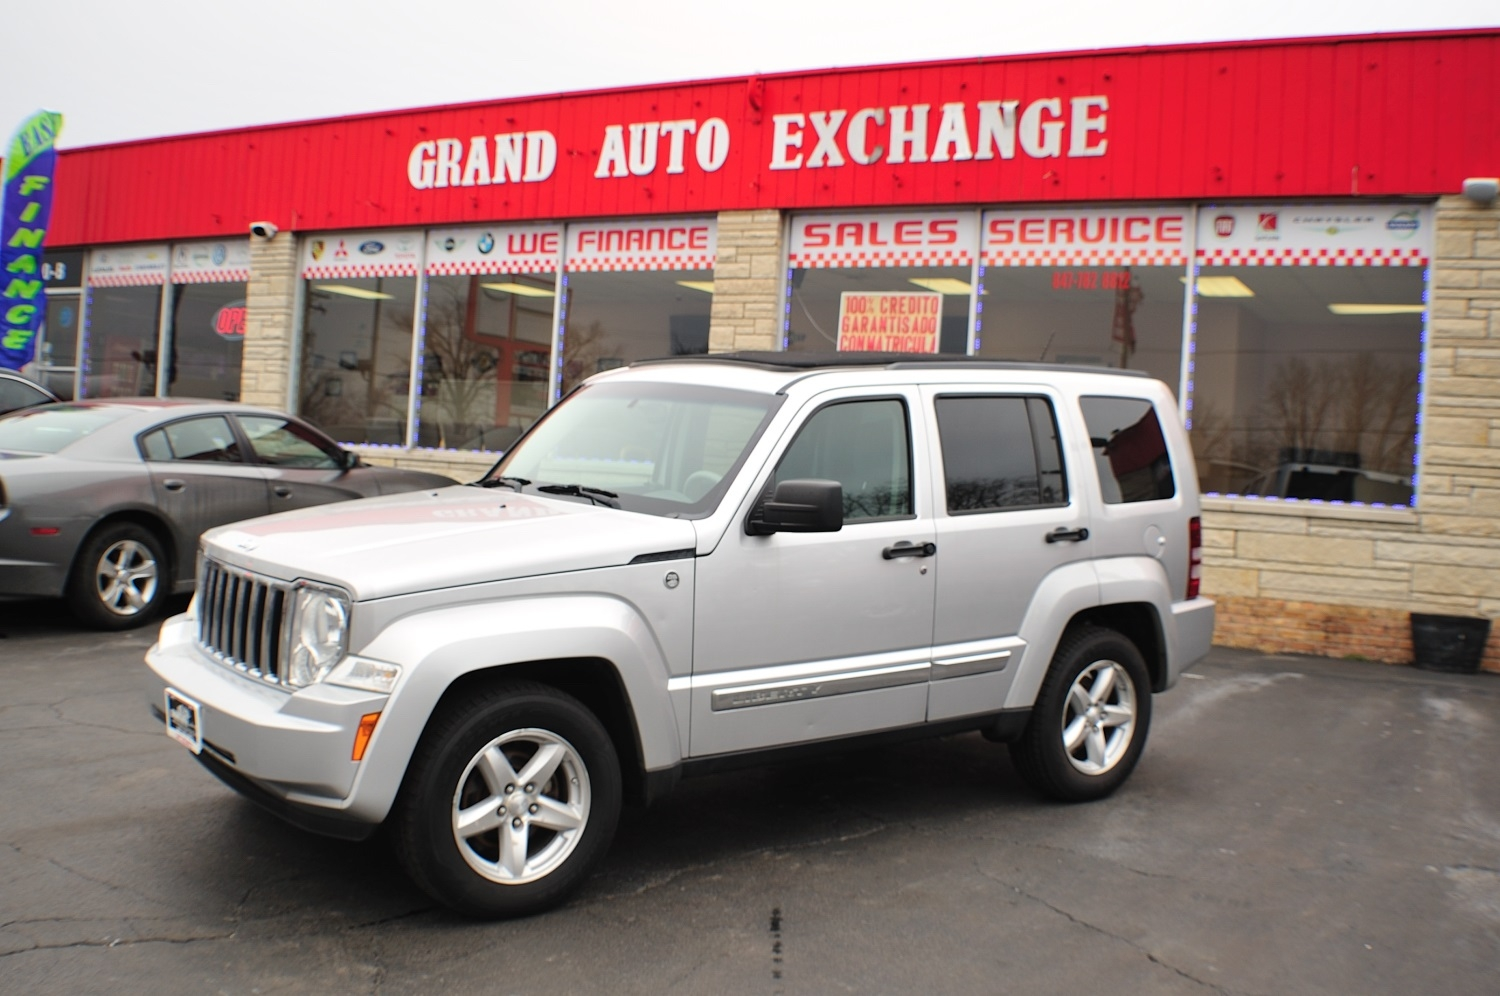 2008 Jeep Liberty Silver 4x4 Used car SUV Sale Antioch Zion Waukegan Lake County Illinois